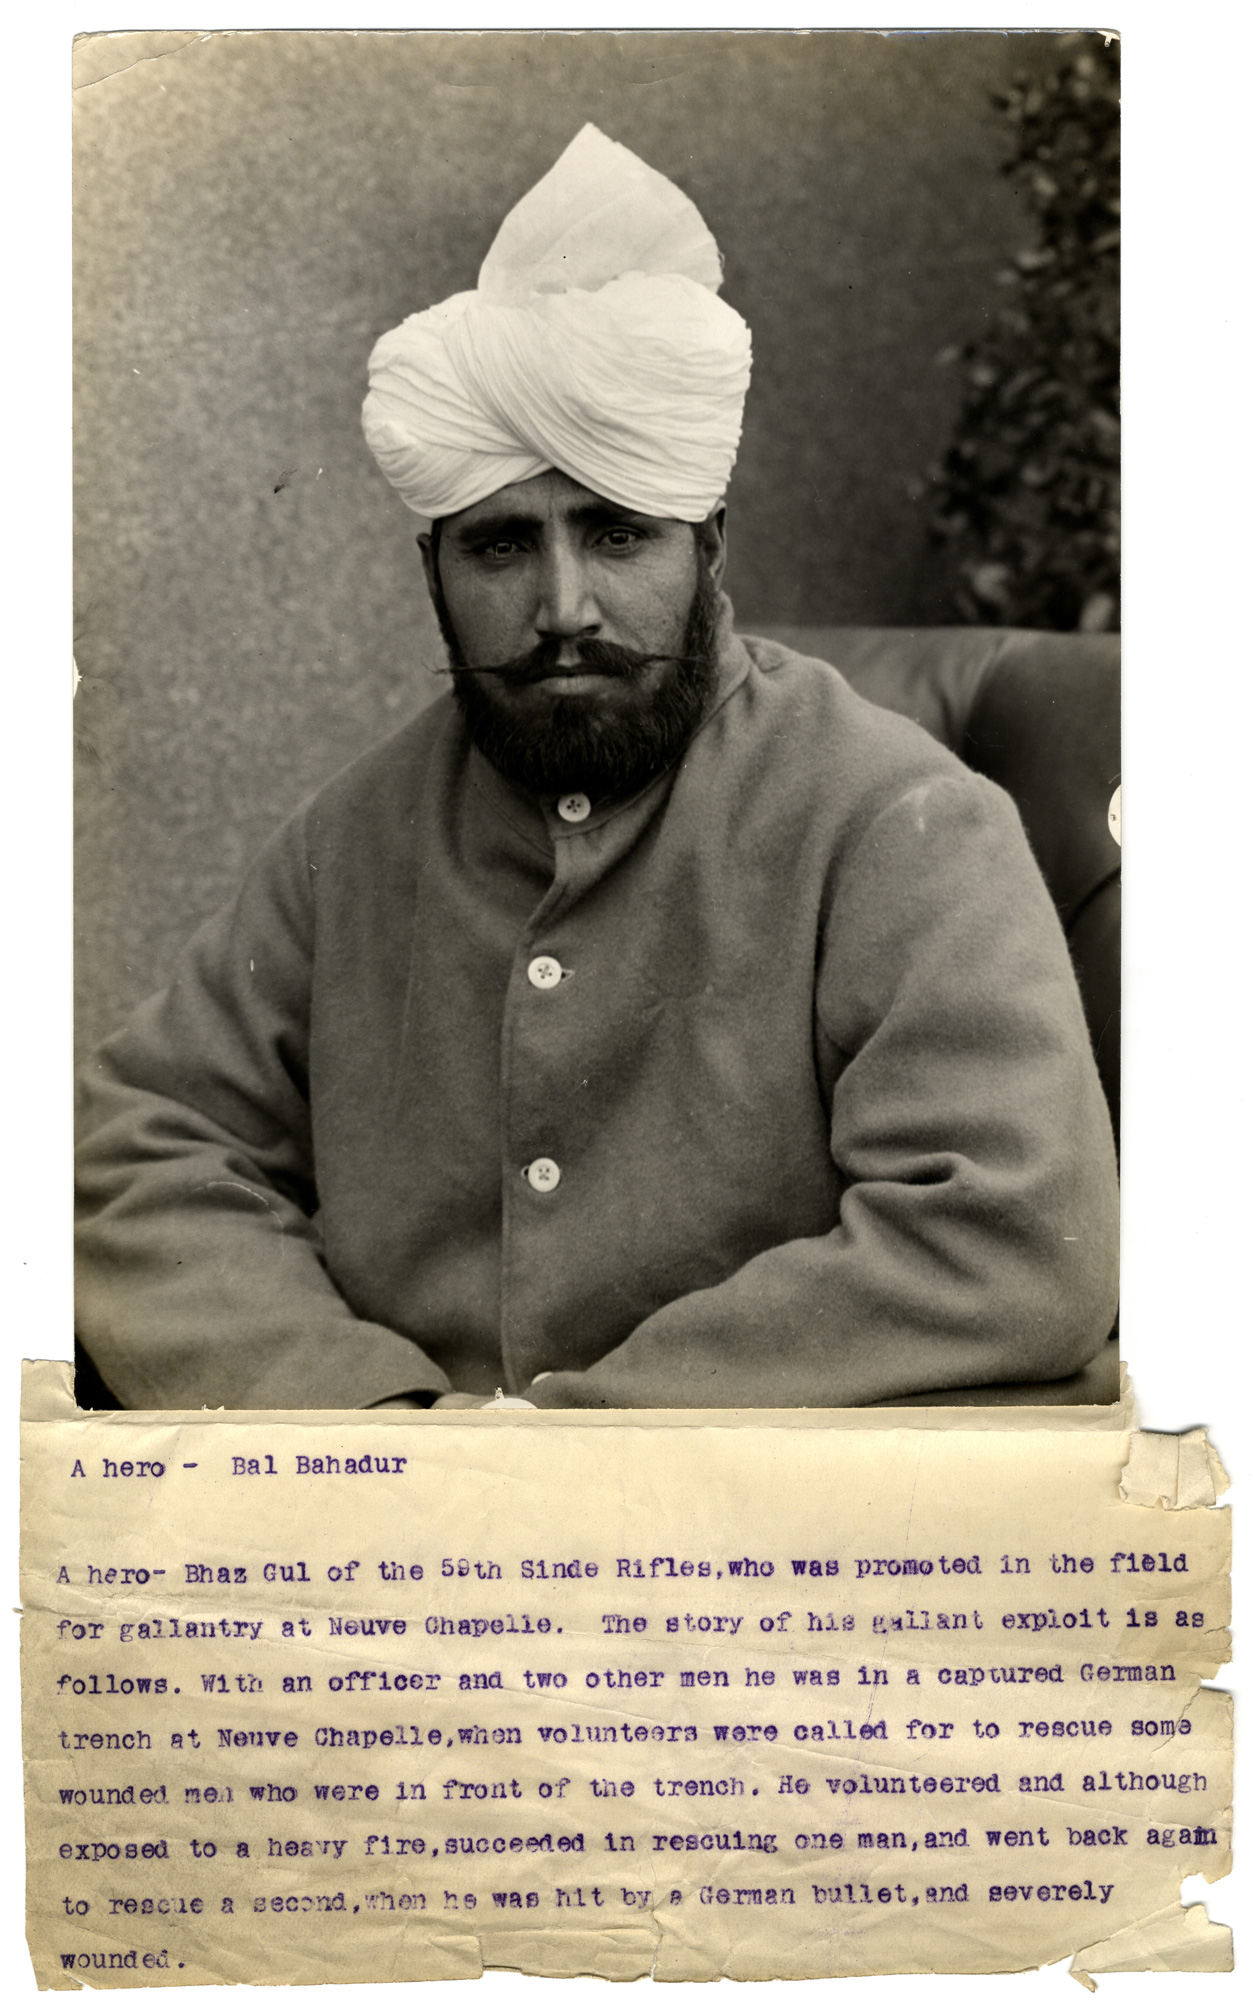 Photograph taken in 1915 of Bal Bahadur (Bhaz Gul) who was wounded when rescuing his fellow soldiers in France.